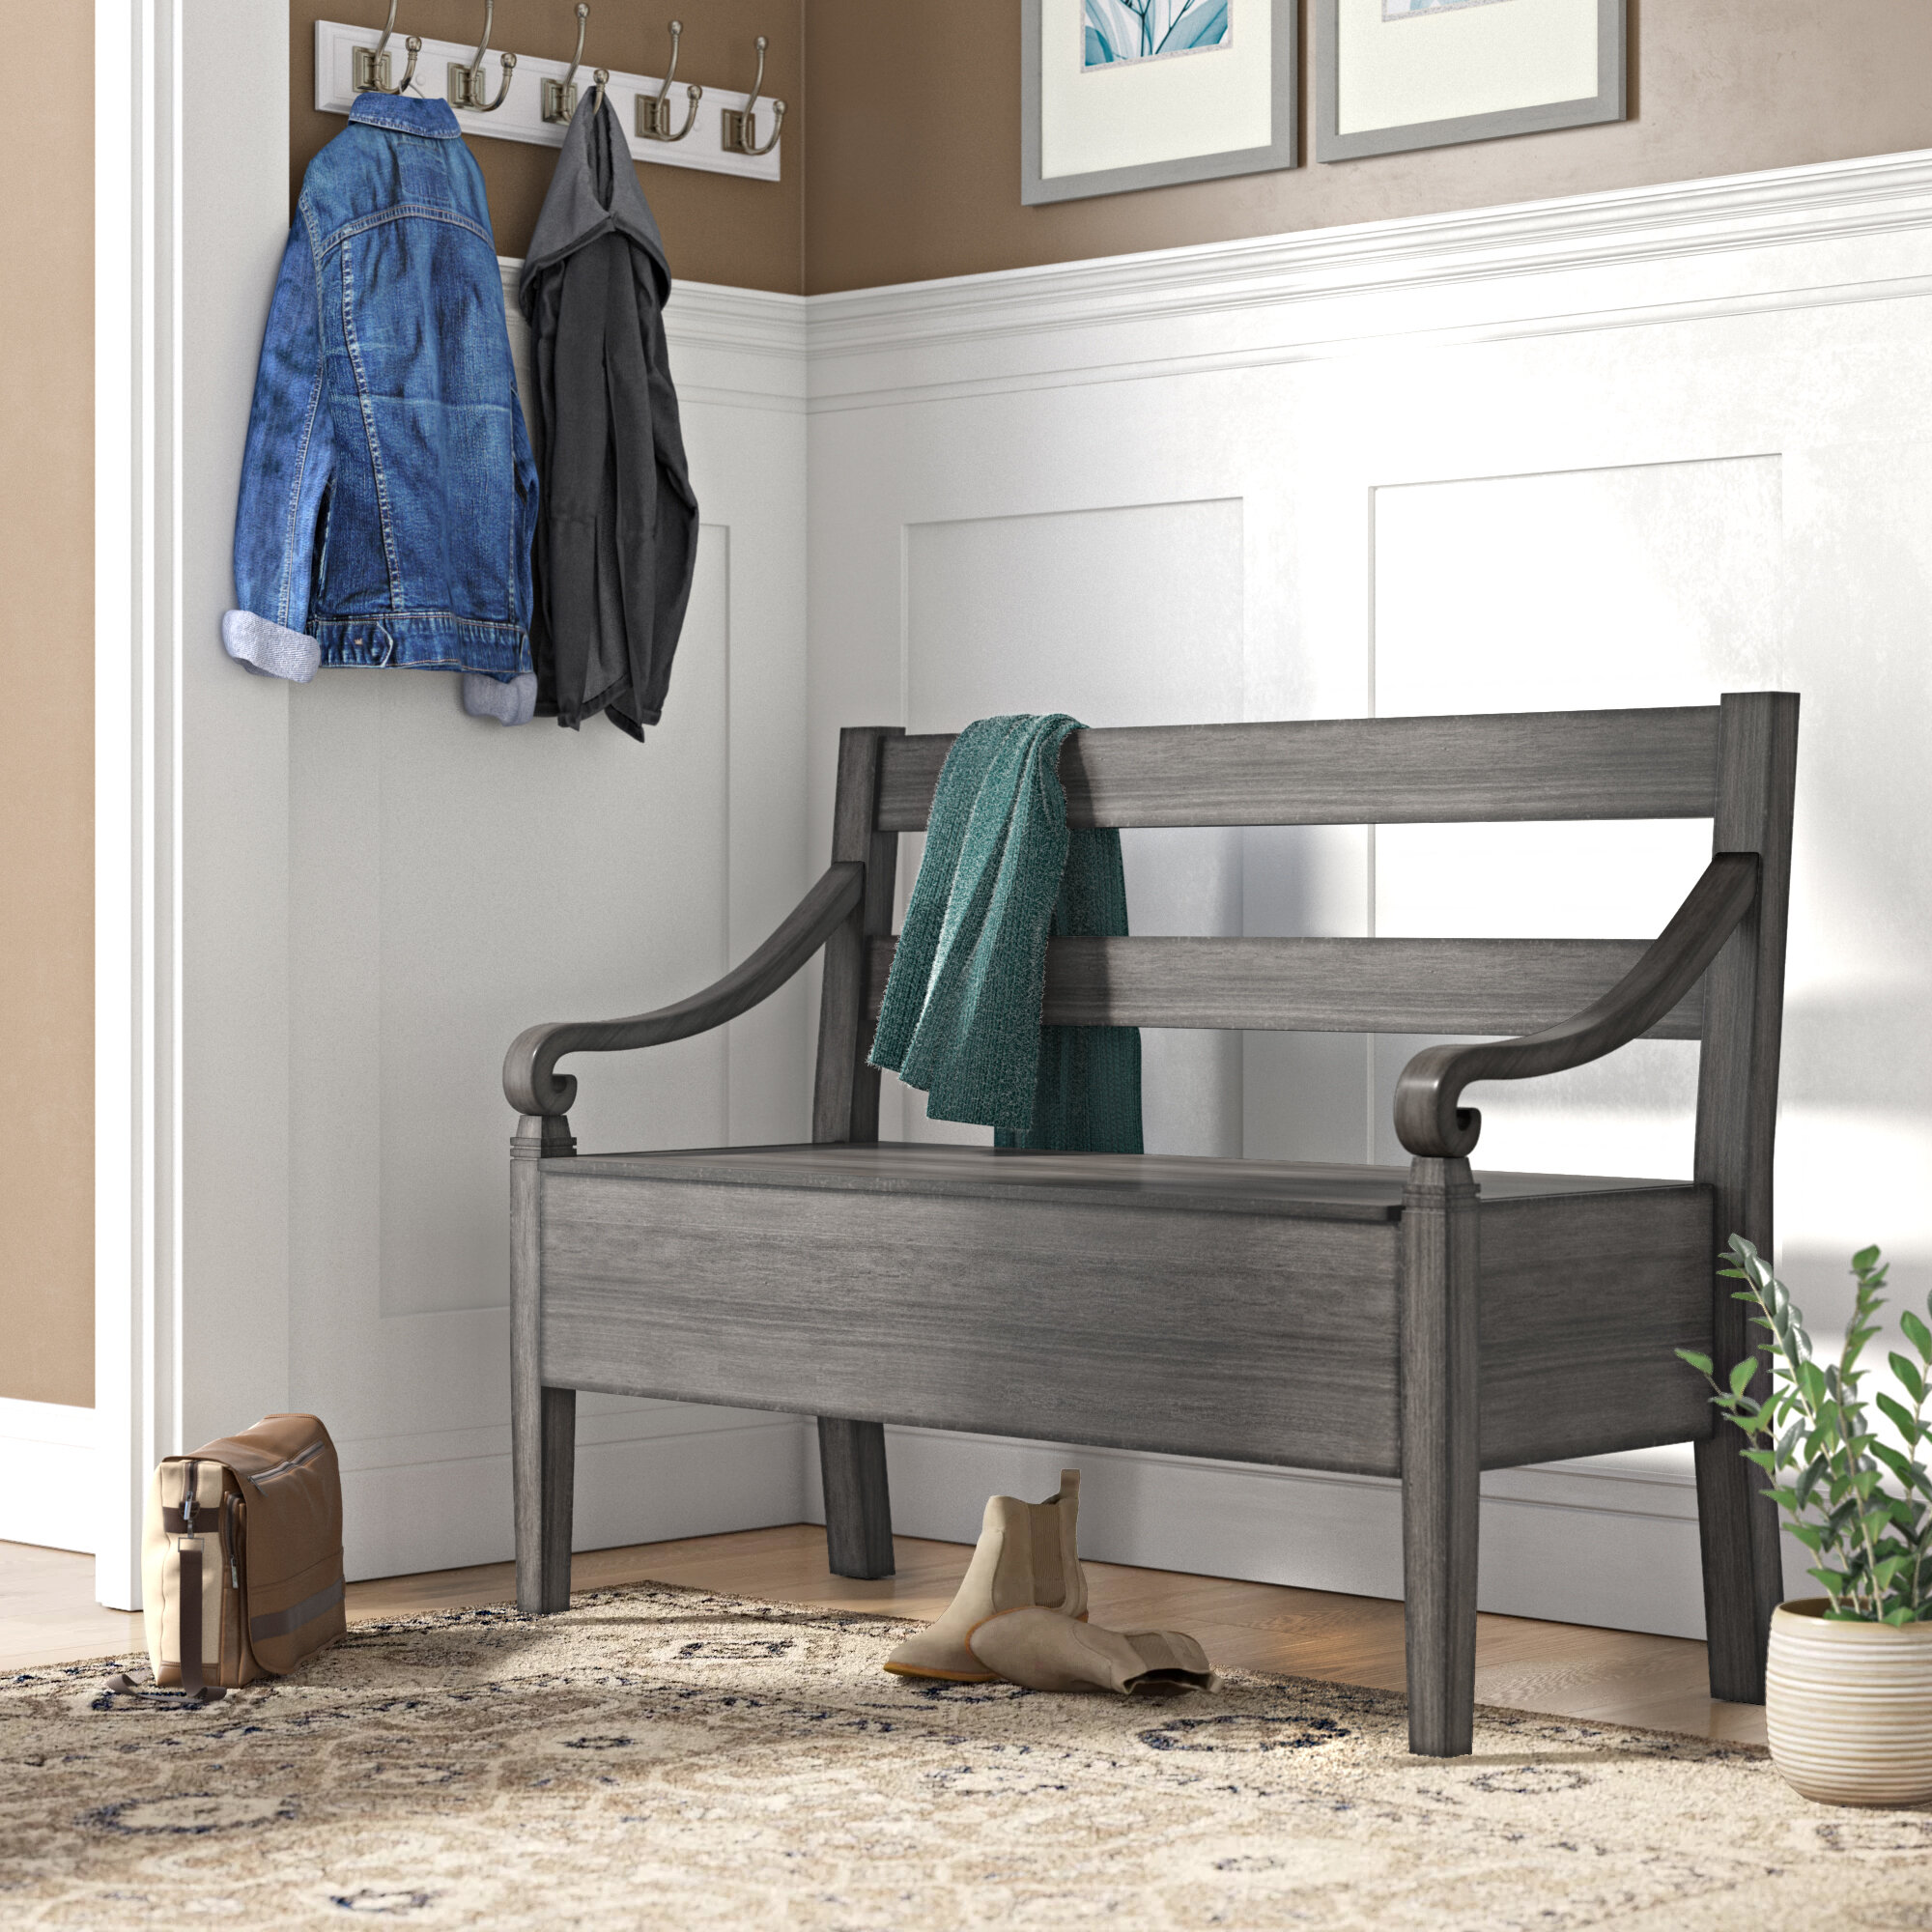 Peachy Rogowski Wood Storage Bench Creativecarmelina Interior Chair Design Creativecarmelinacom